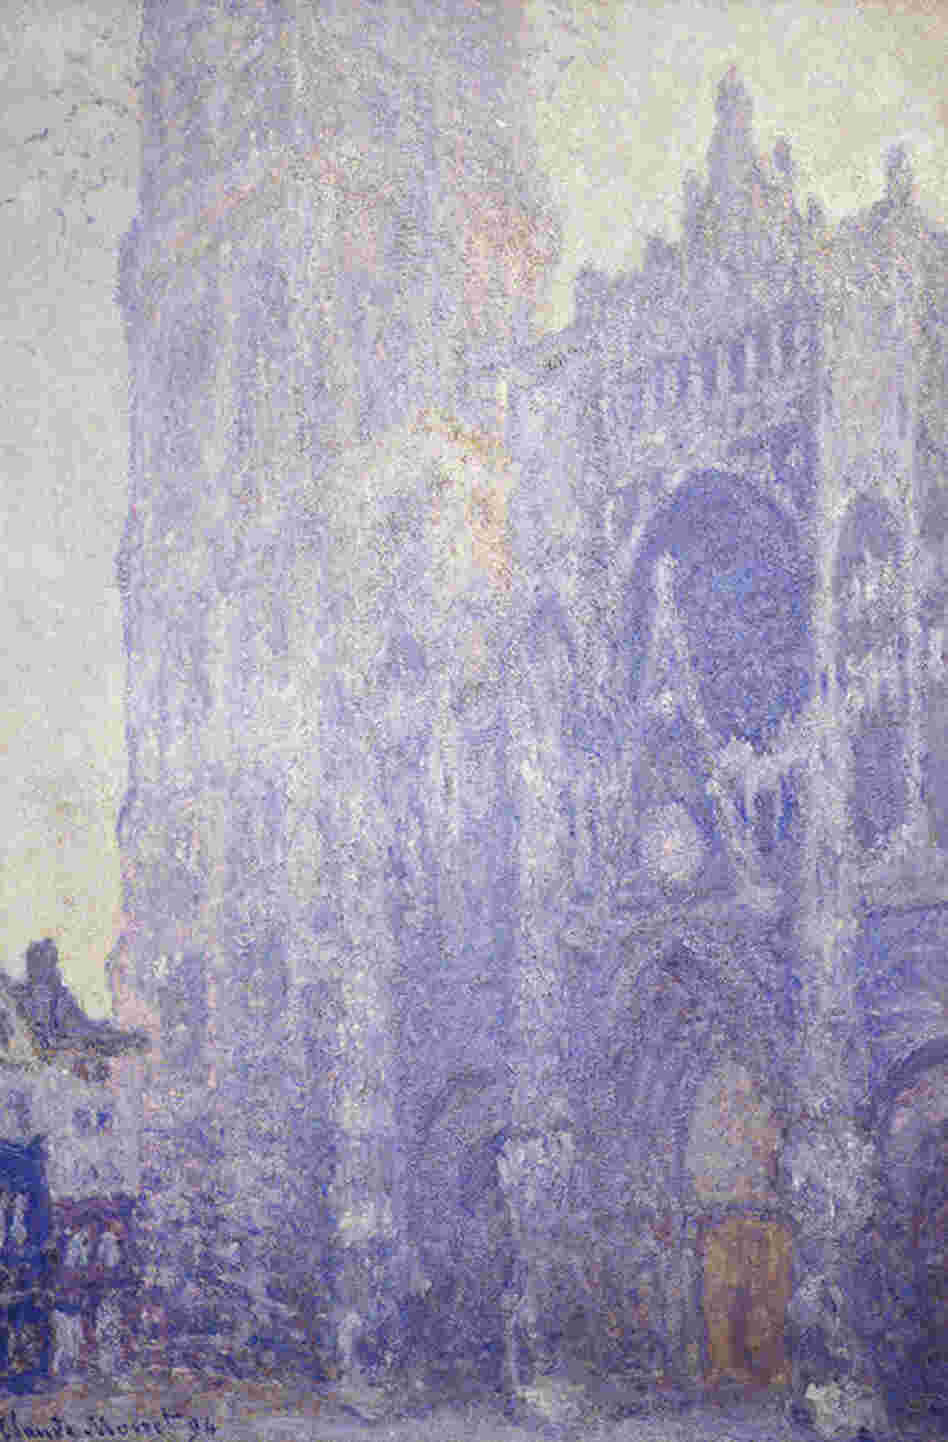 Rouen Cathedral in the Afternoon, by Claude Monet, 1894. Monet would usually work on the cathedral paintings from 7 in the morning until 6 or 7 in the evening, painting up to 10 canvases at once.